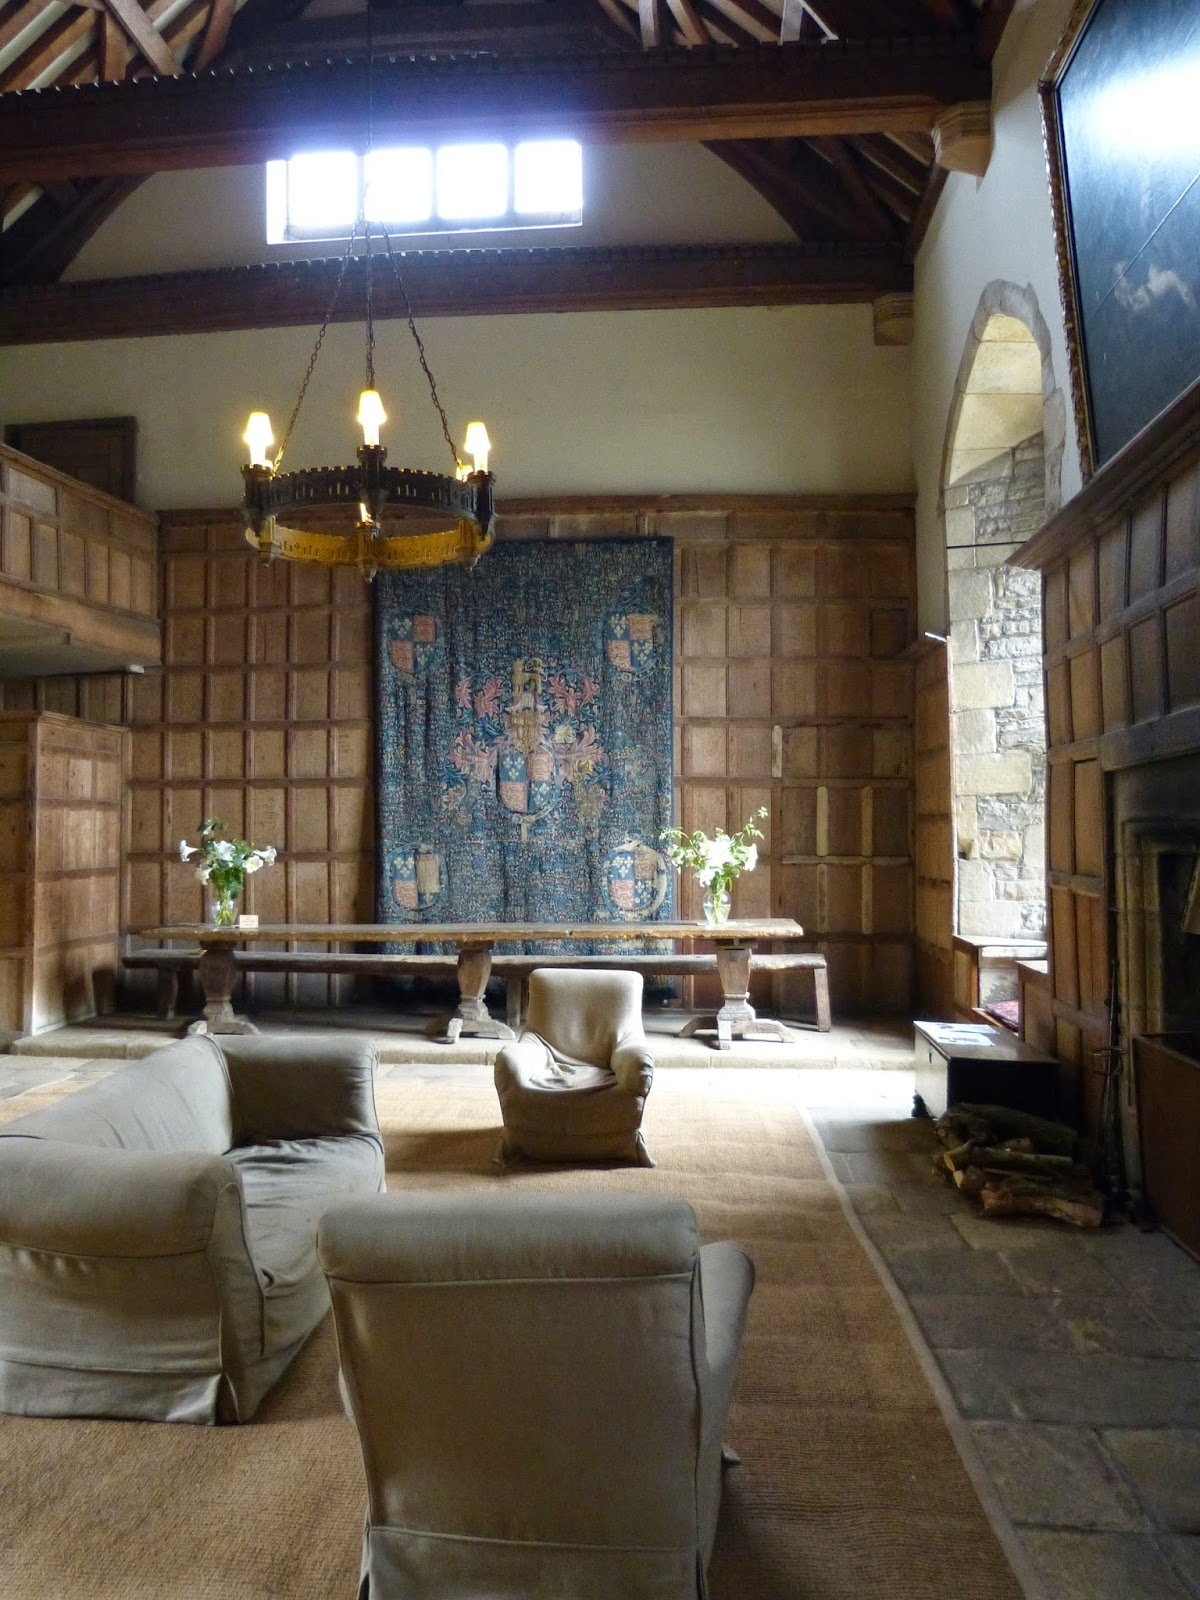 The Banqueting Hall, Haddon Hall